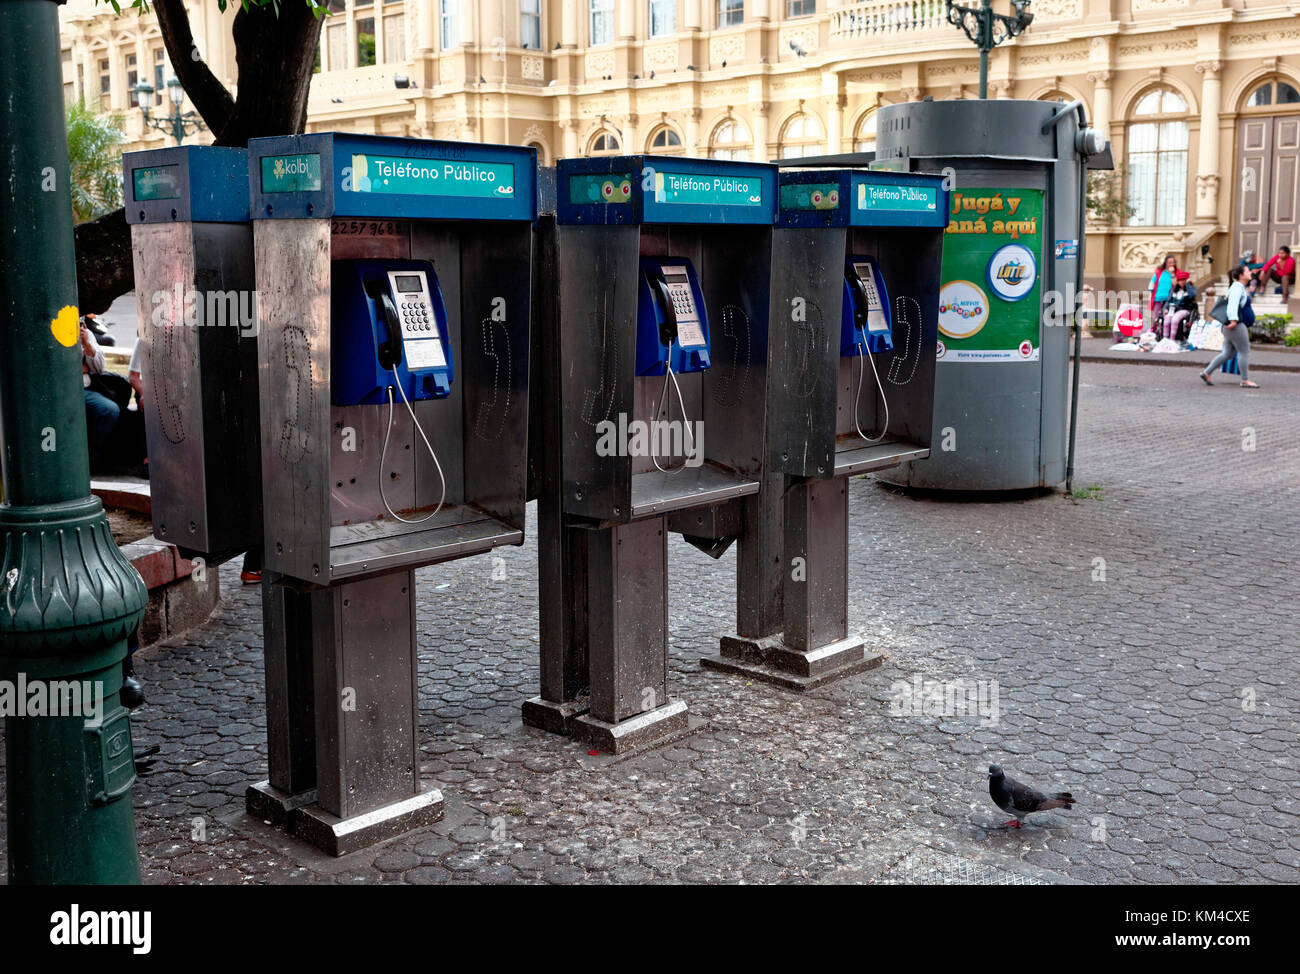 Row of public telephones outside The Grand Post Office and Telegraph building in San Jose, Costa Rica - Stock Image